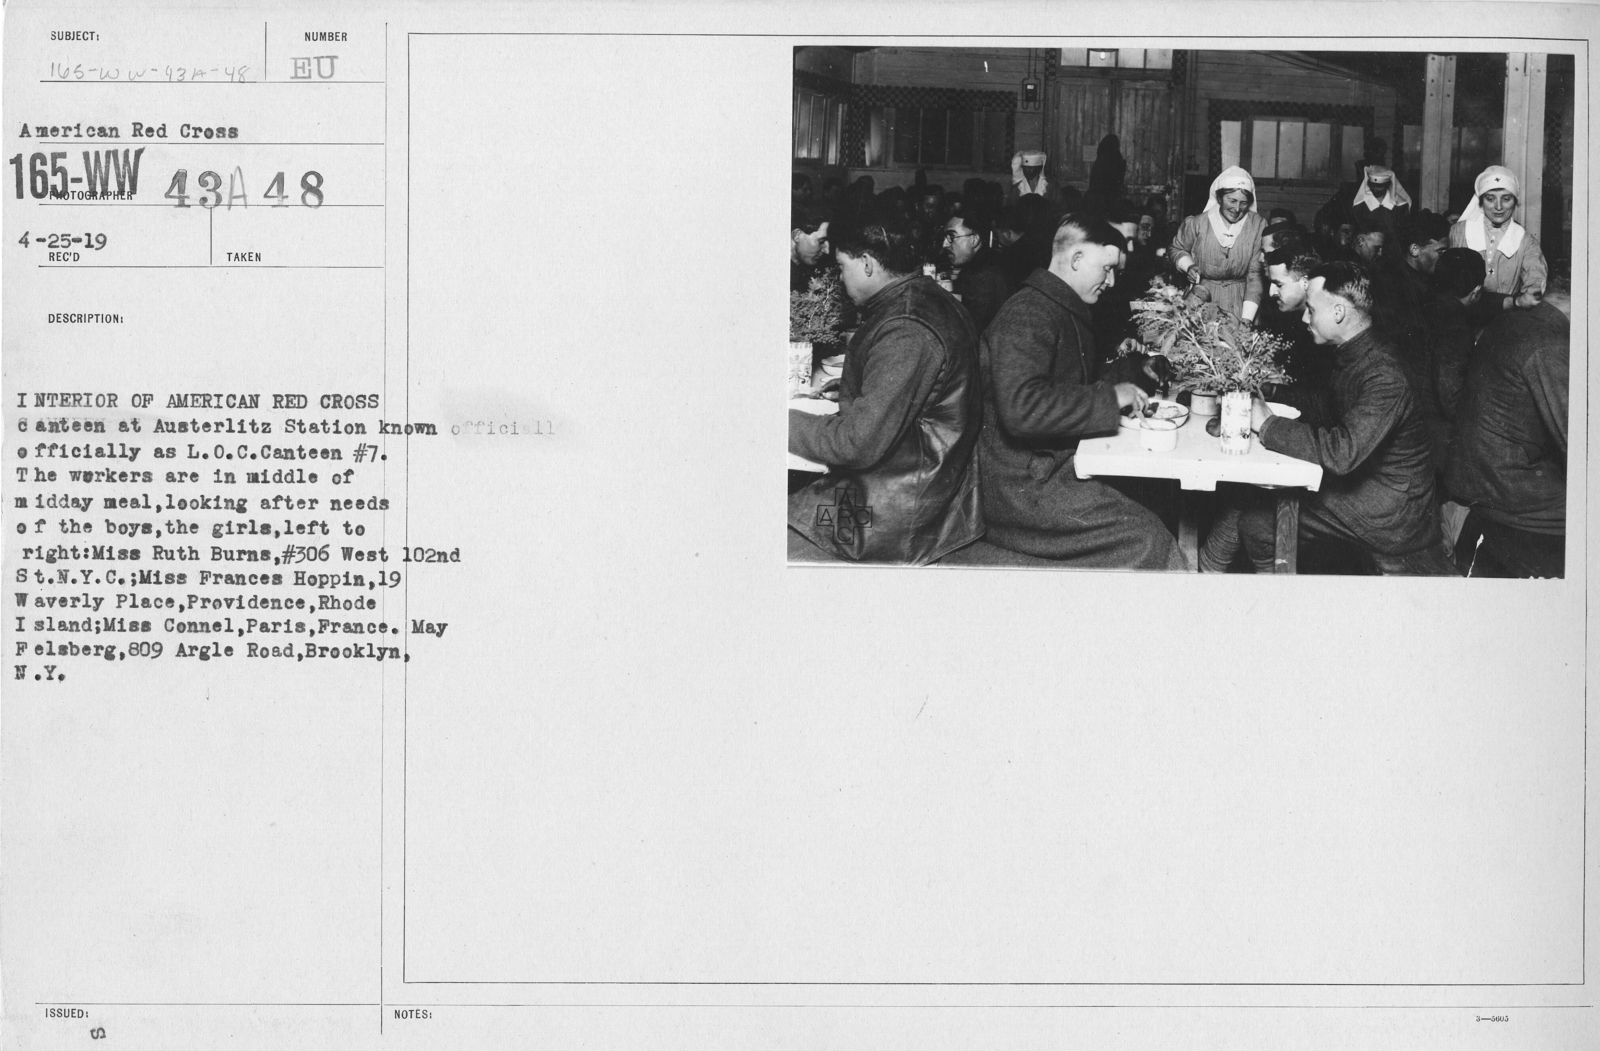 American Red Cross - Canteens - Interior of American Red Cross canteen at Austerlitz Station known officially as L.O.C. Canteen #7. The workers are in middle of midday meal, looking after needs of the boys, the girls, left to right: Miss Ruth Burns, #306 West 102nd St., N.Y.C.; Miss Frances Hoppin, 19 Waverly Place, Providence, Rhode Island; Miss Connel, Paris, France; May Felsberg, 809 Argle Road, Brooklyn, N.Y